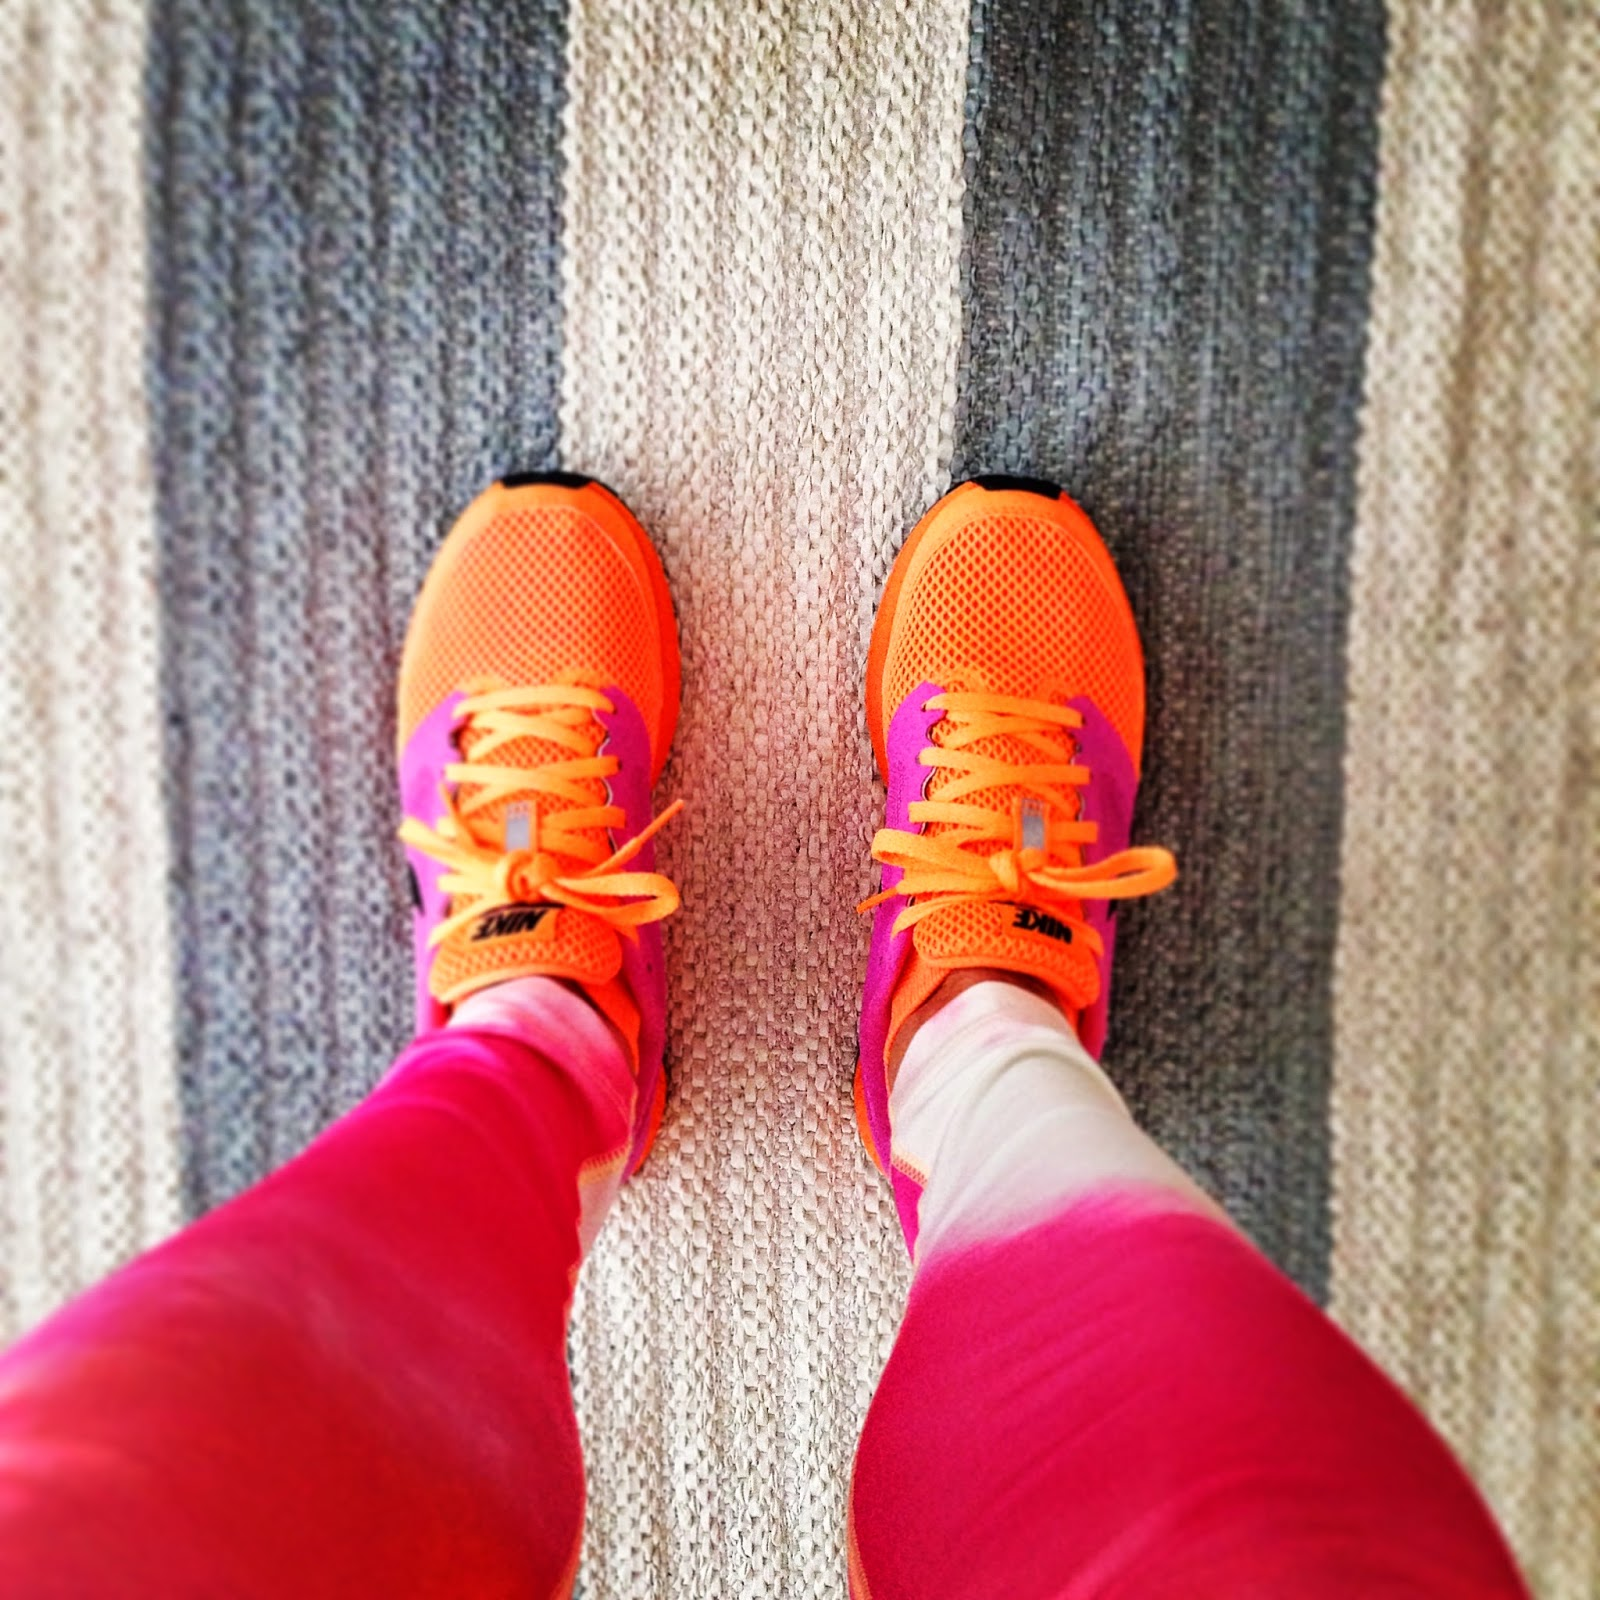 zoomfly, nike, nikerunning, nikeleggings, niketights, sunset